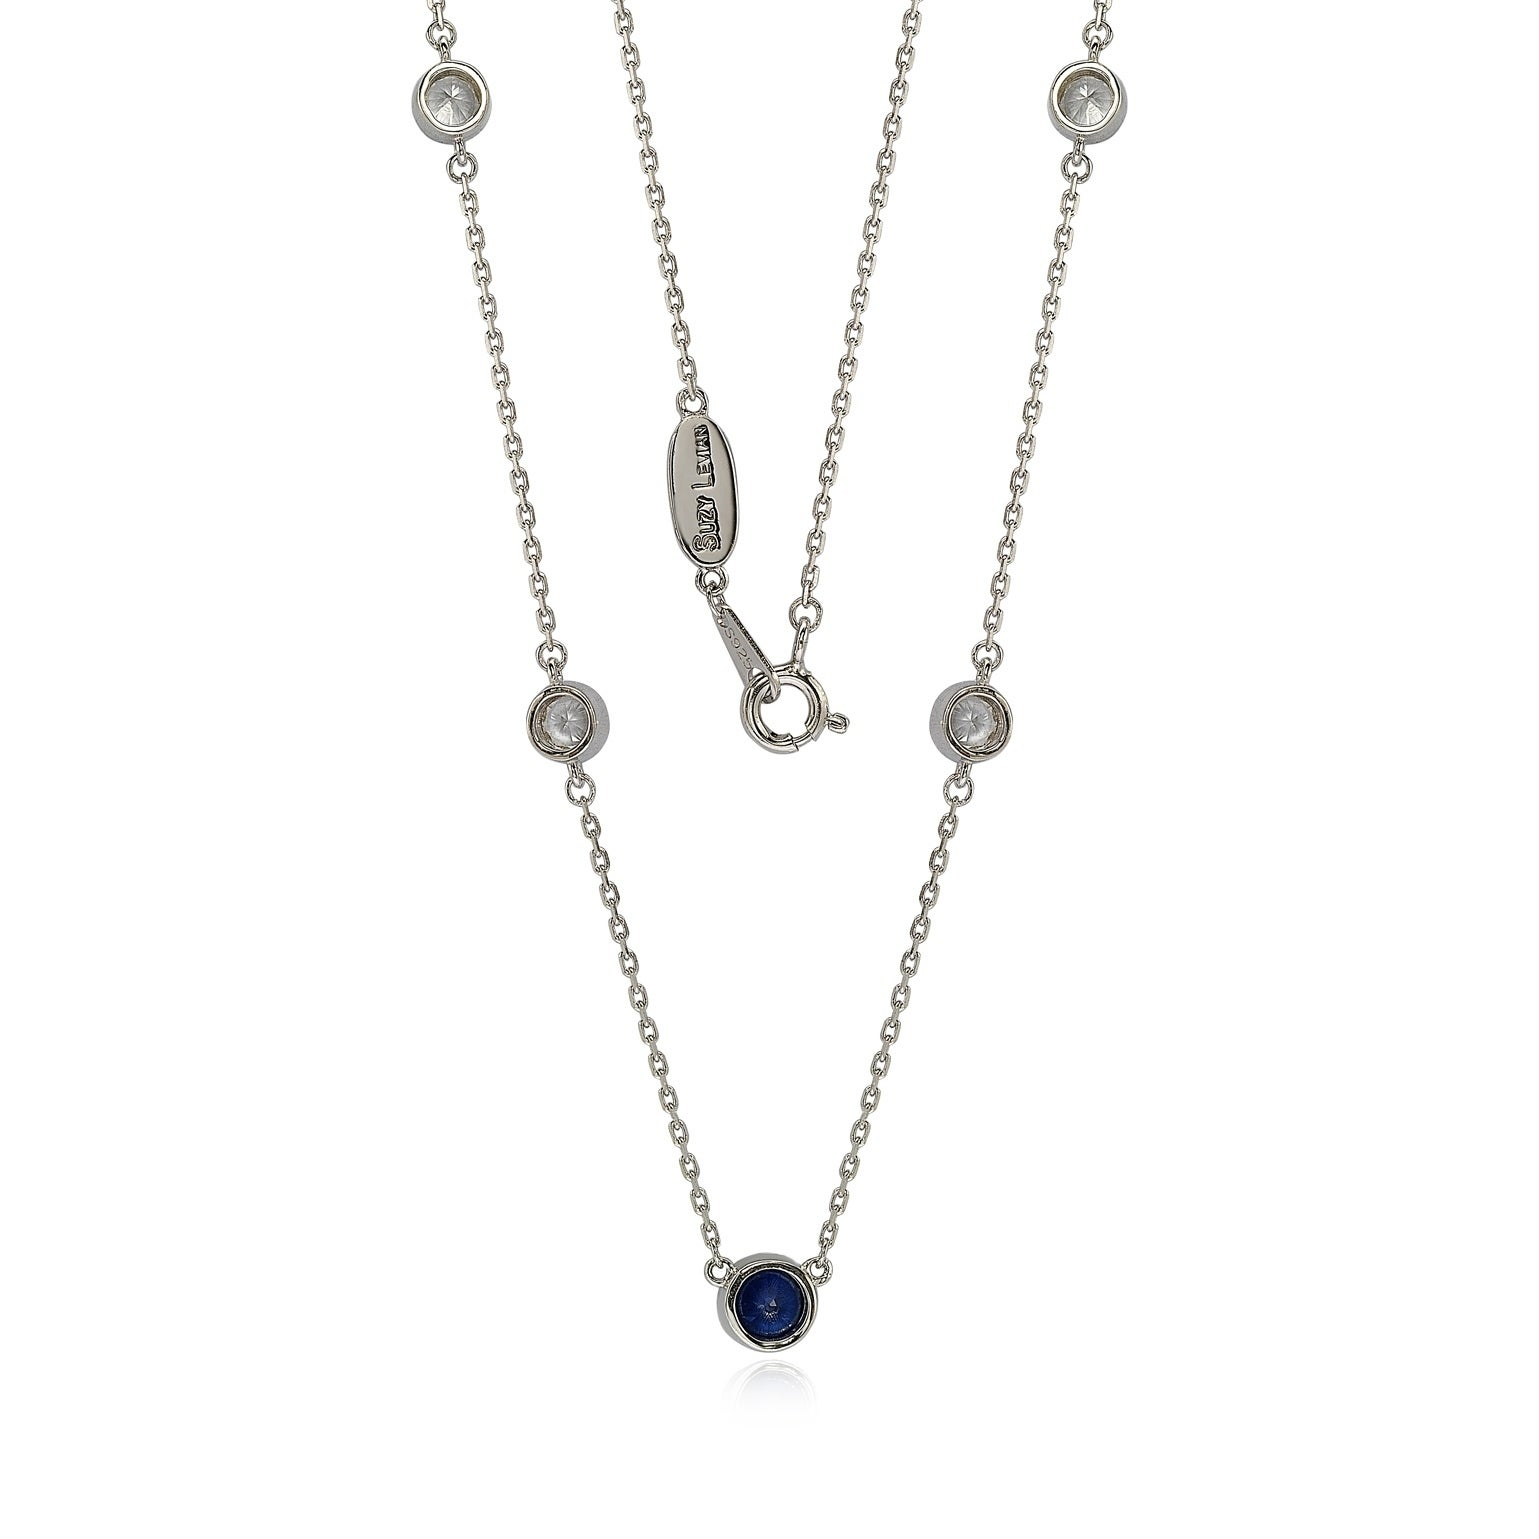 243f0a3821bf8 Suzy Levian Sapphire & Diamond Accent (1.50cttw) Sterling Silver 5 Stone  Station Necklace